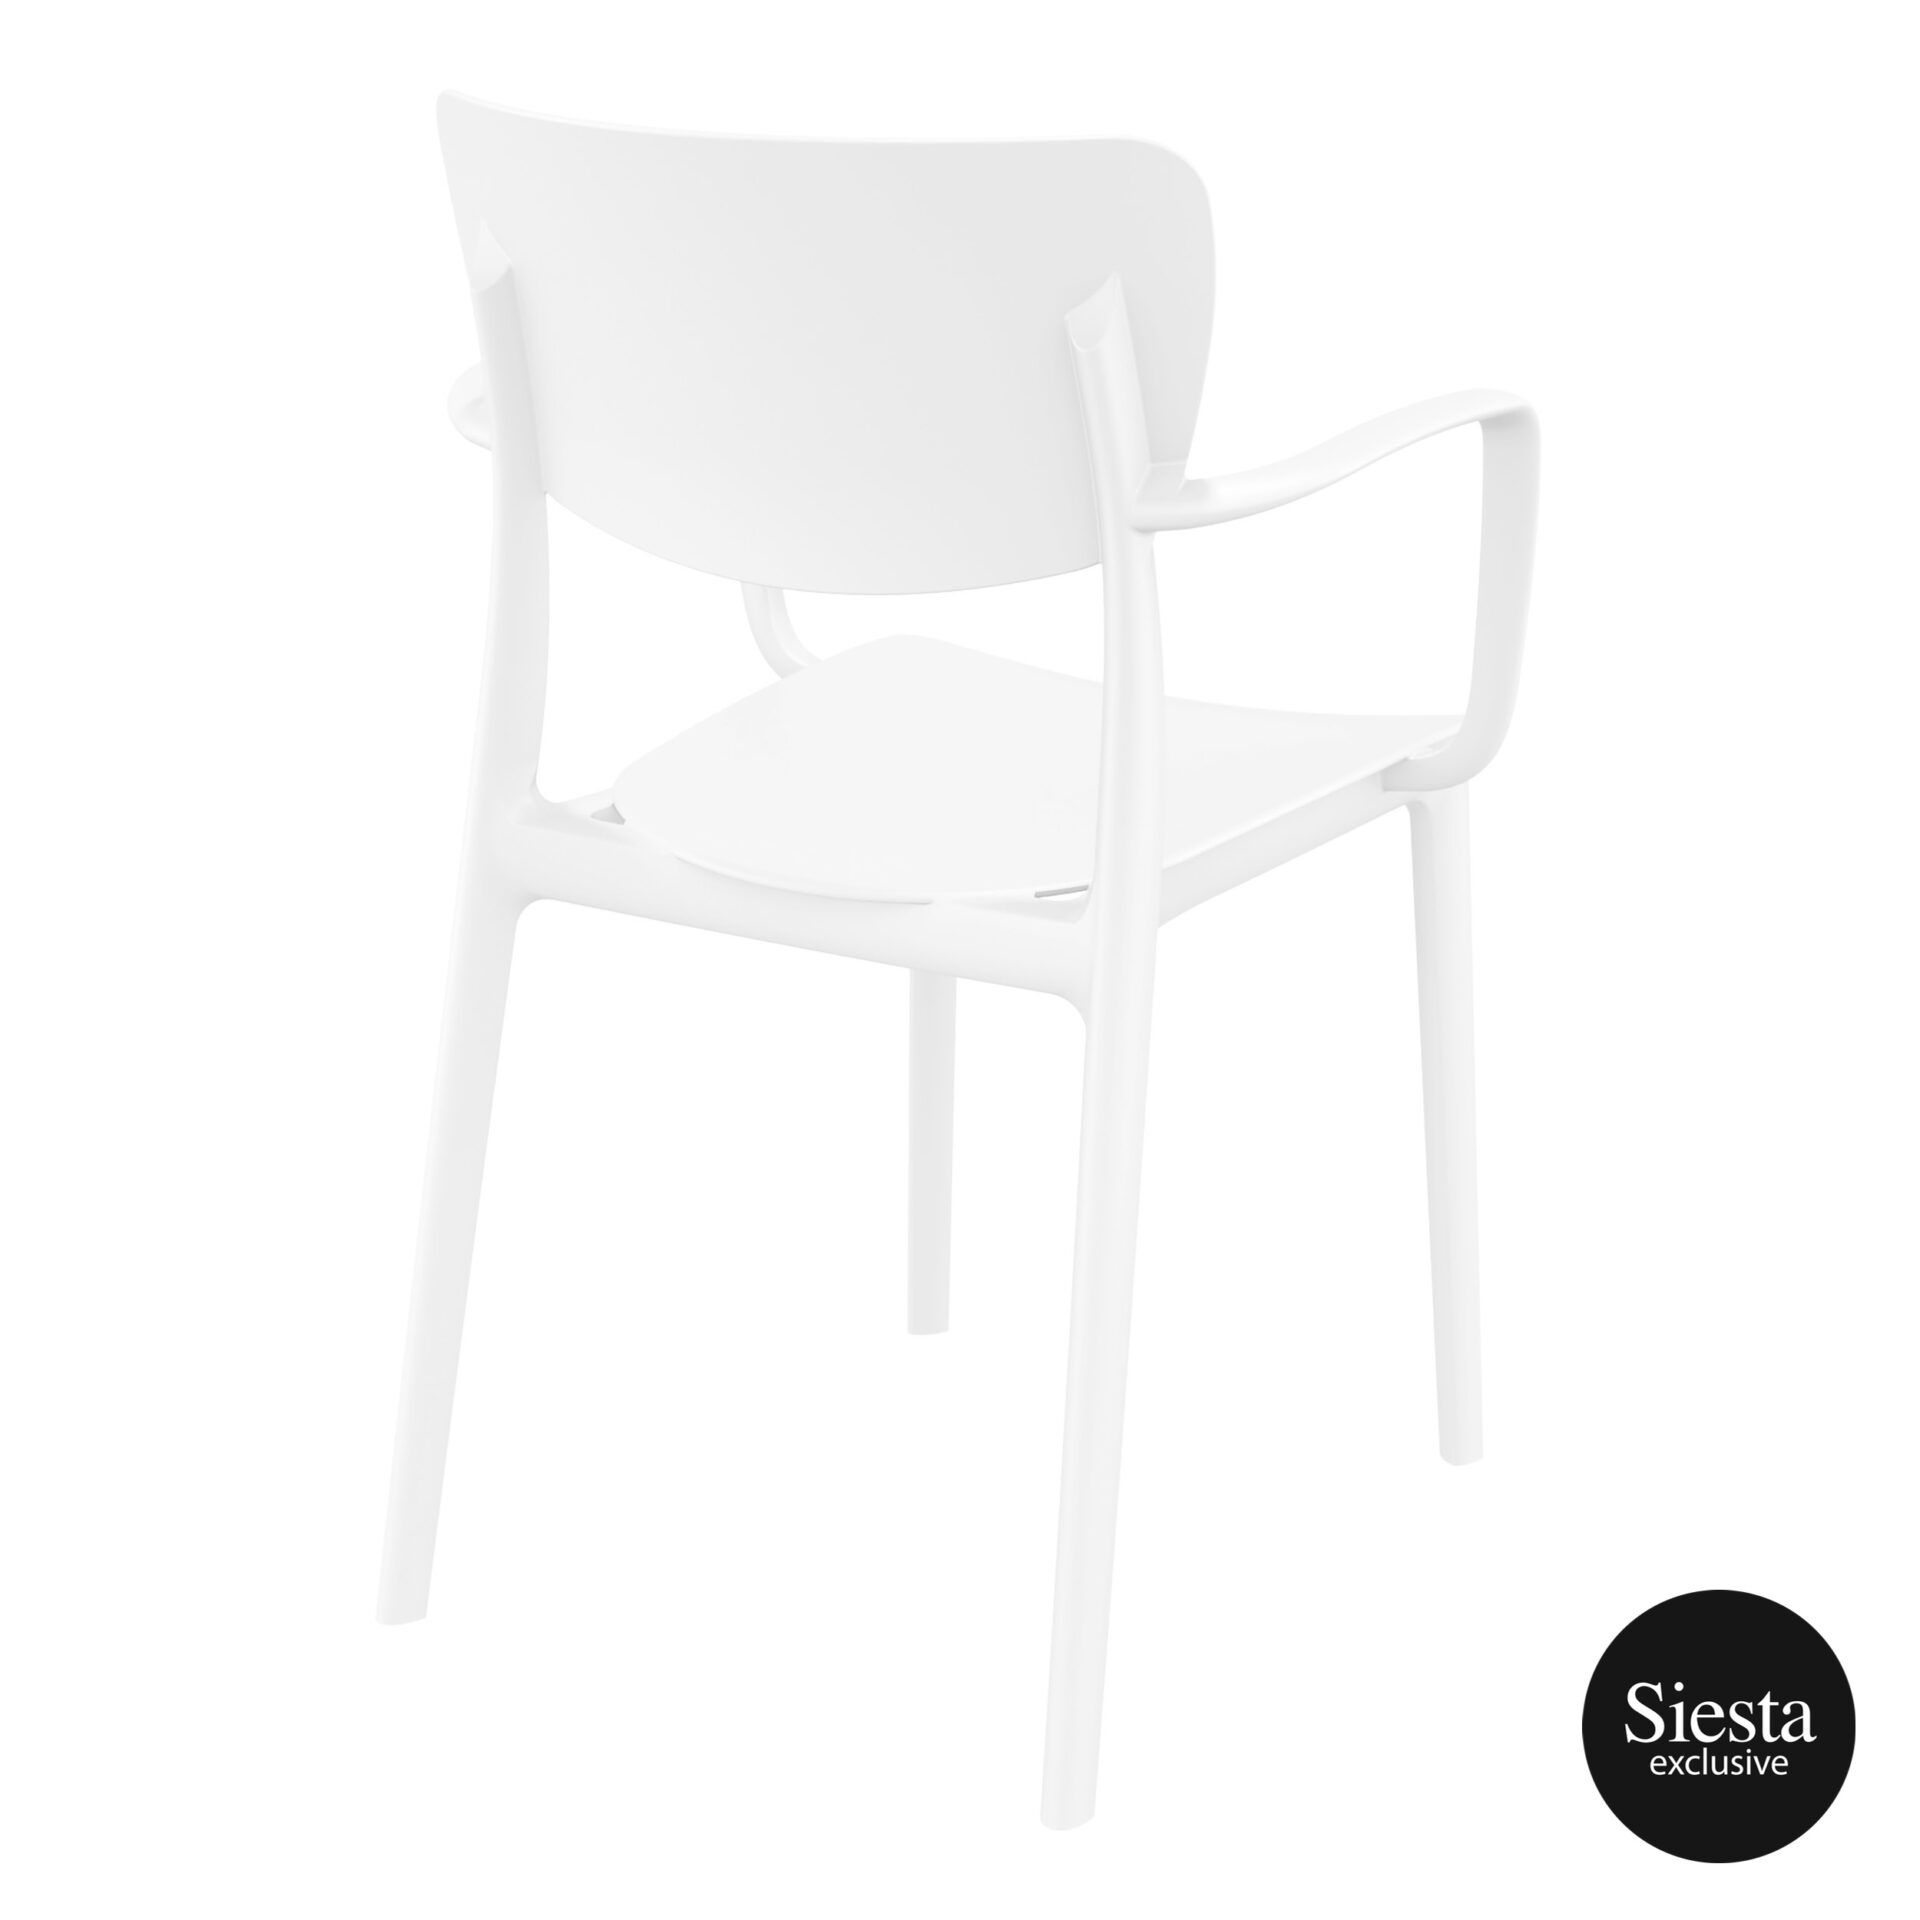 polypropylene hospitality seating lisa armchair white back side 1